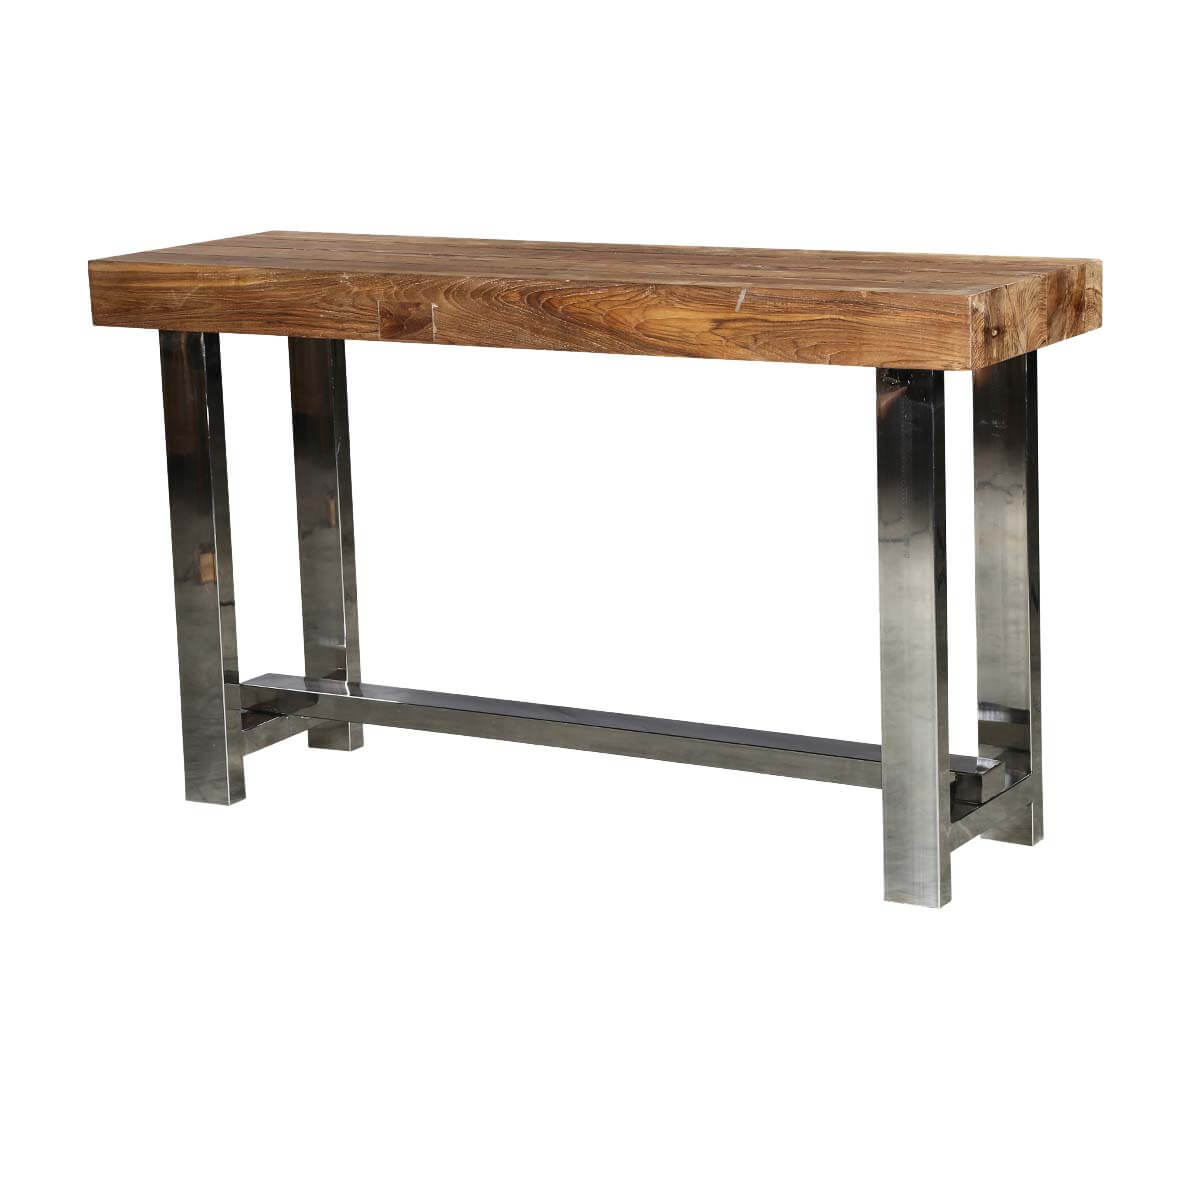 Modern Industrial Teak Wood & Polished Steel Hall Console Table